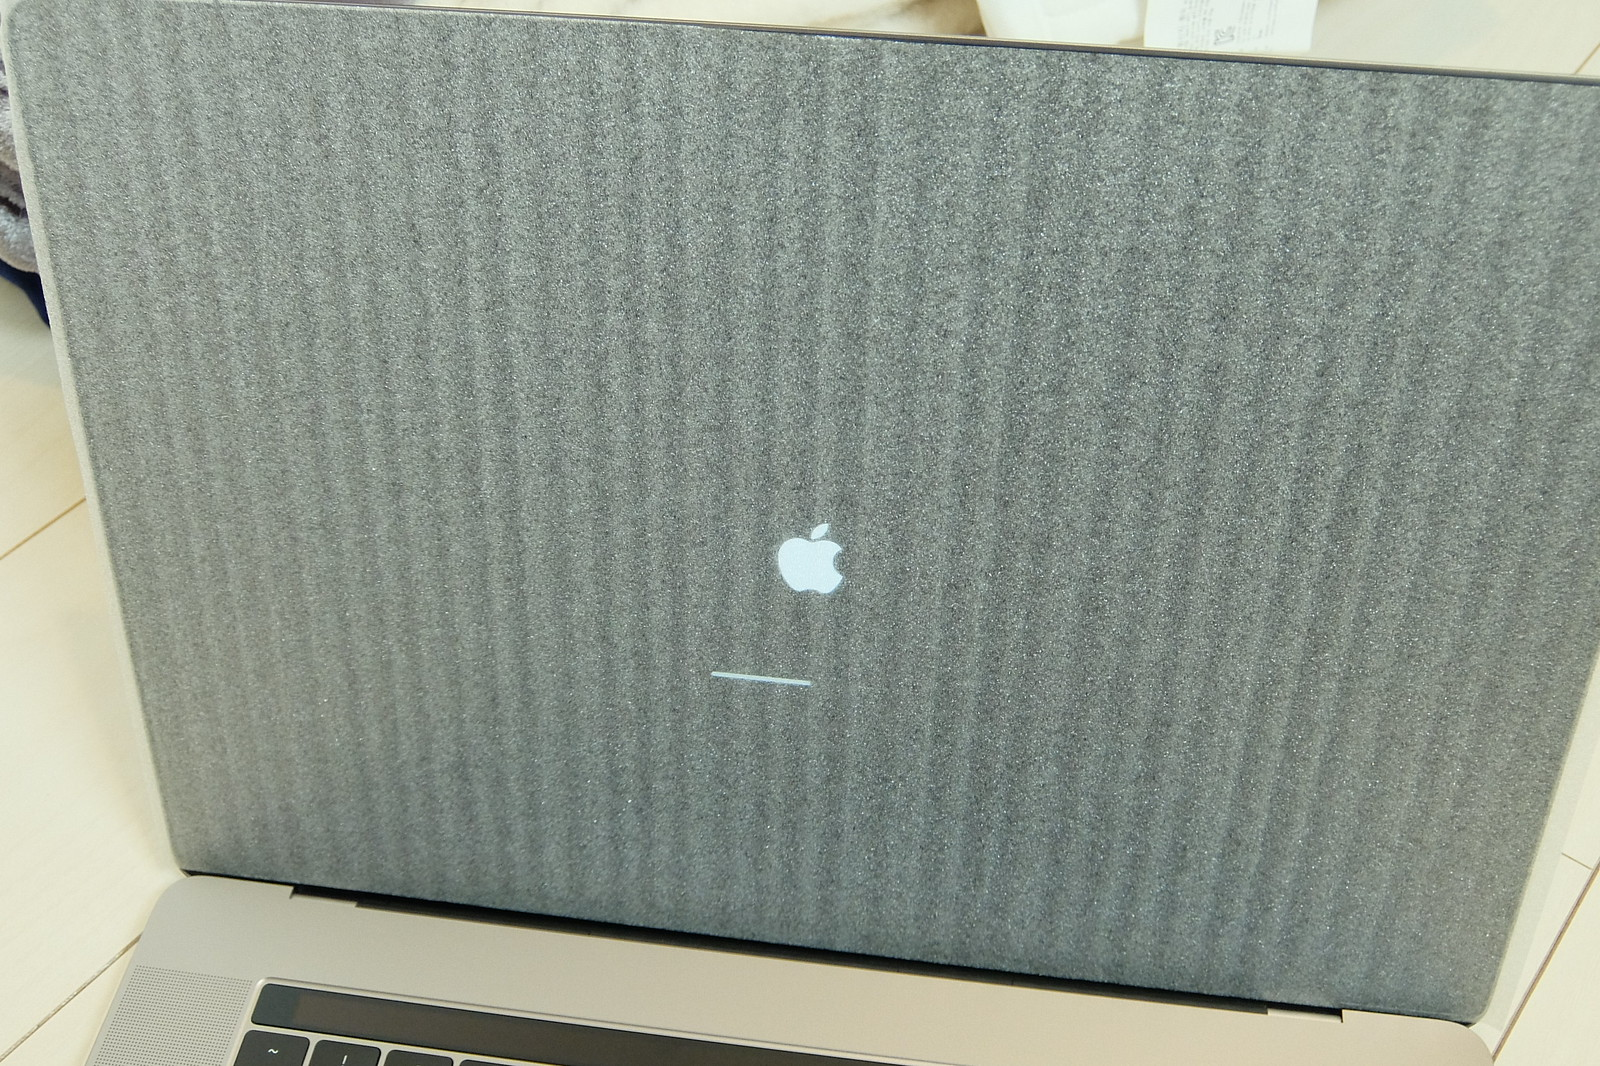 MacBook Pro 2016 return from repair